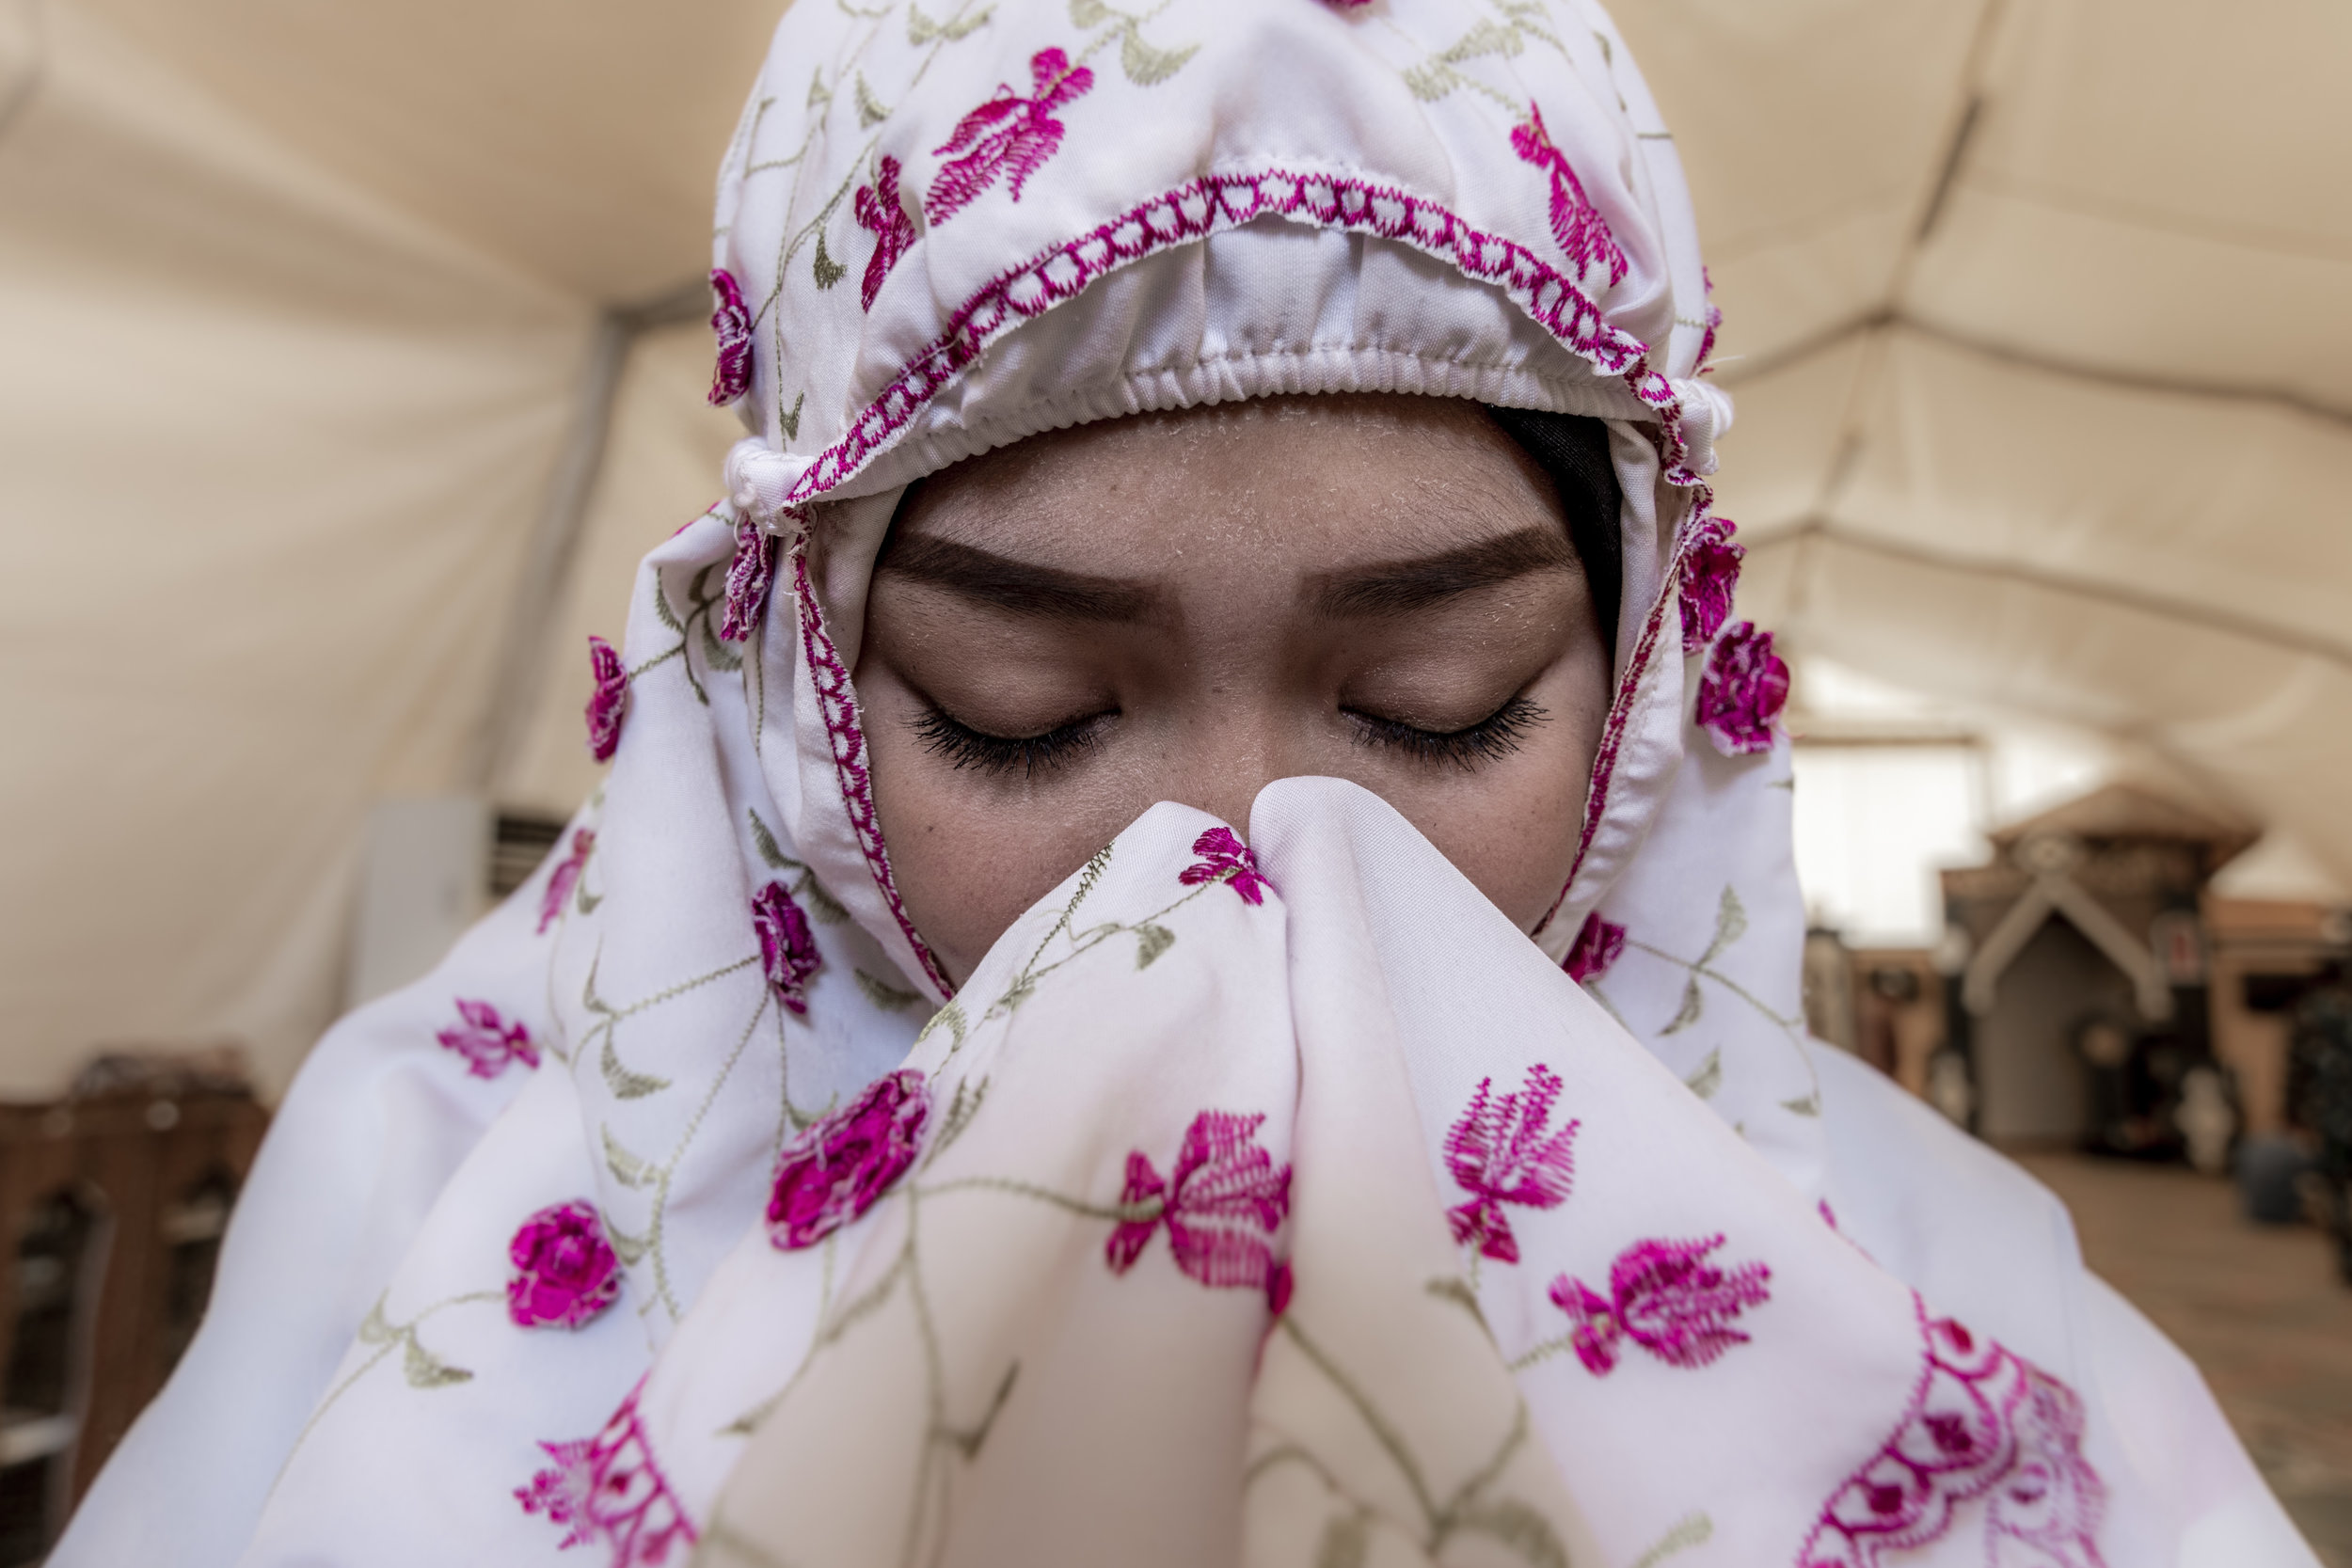 May 4, 2018, UNIFIL- an Indonesian women prays in the makeshift mosque at their base.